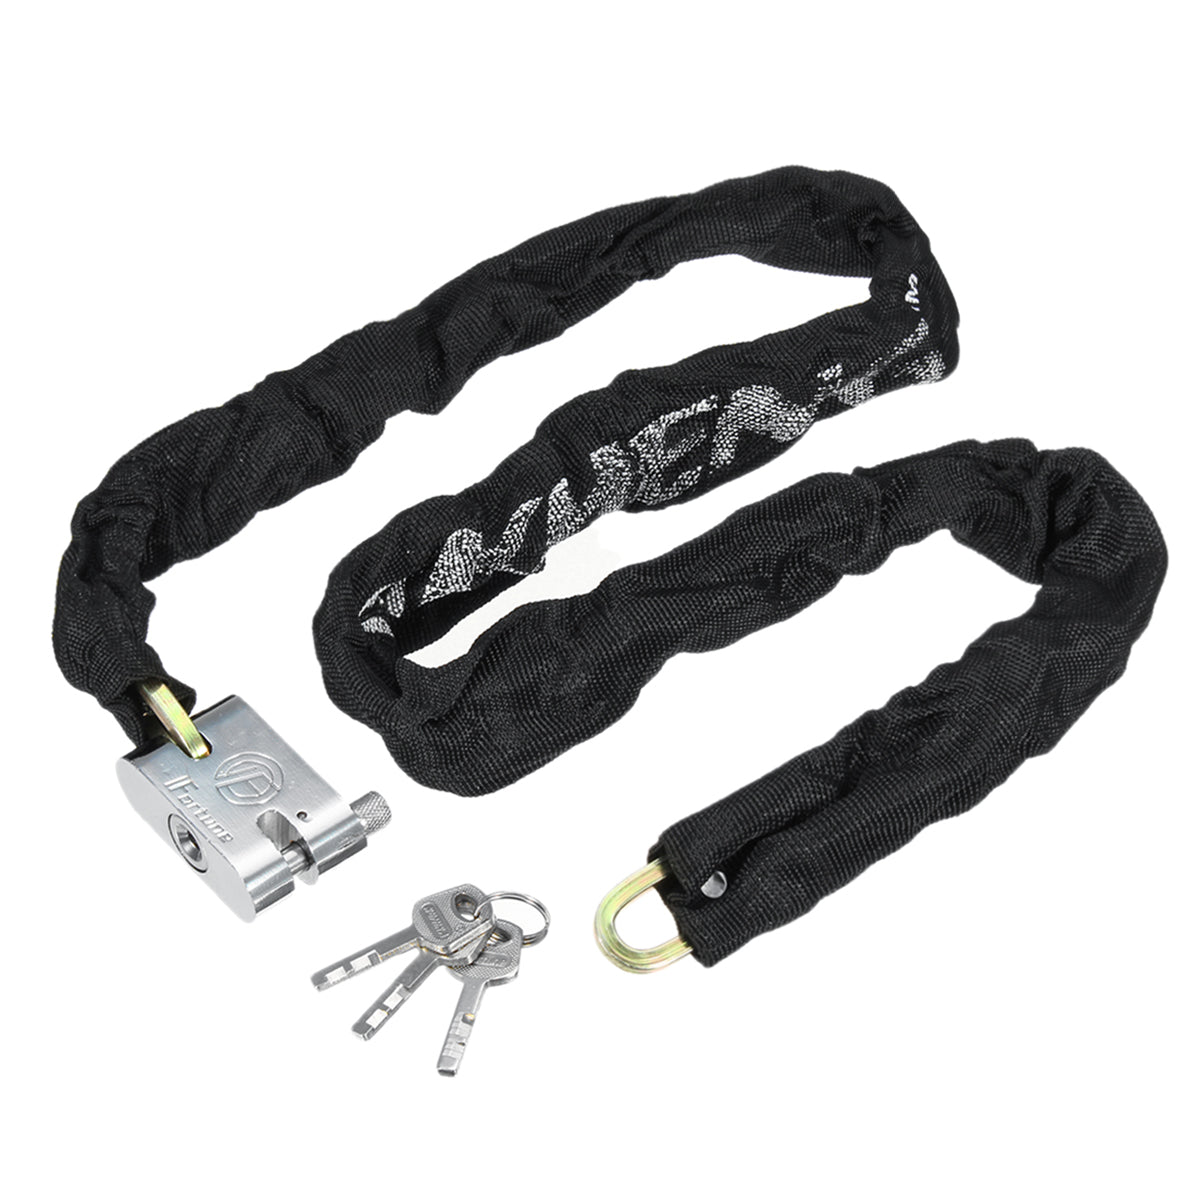 1.2M Heavy Duty Lock Chain Padlock Set Bicycle Scooter Motorcycle